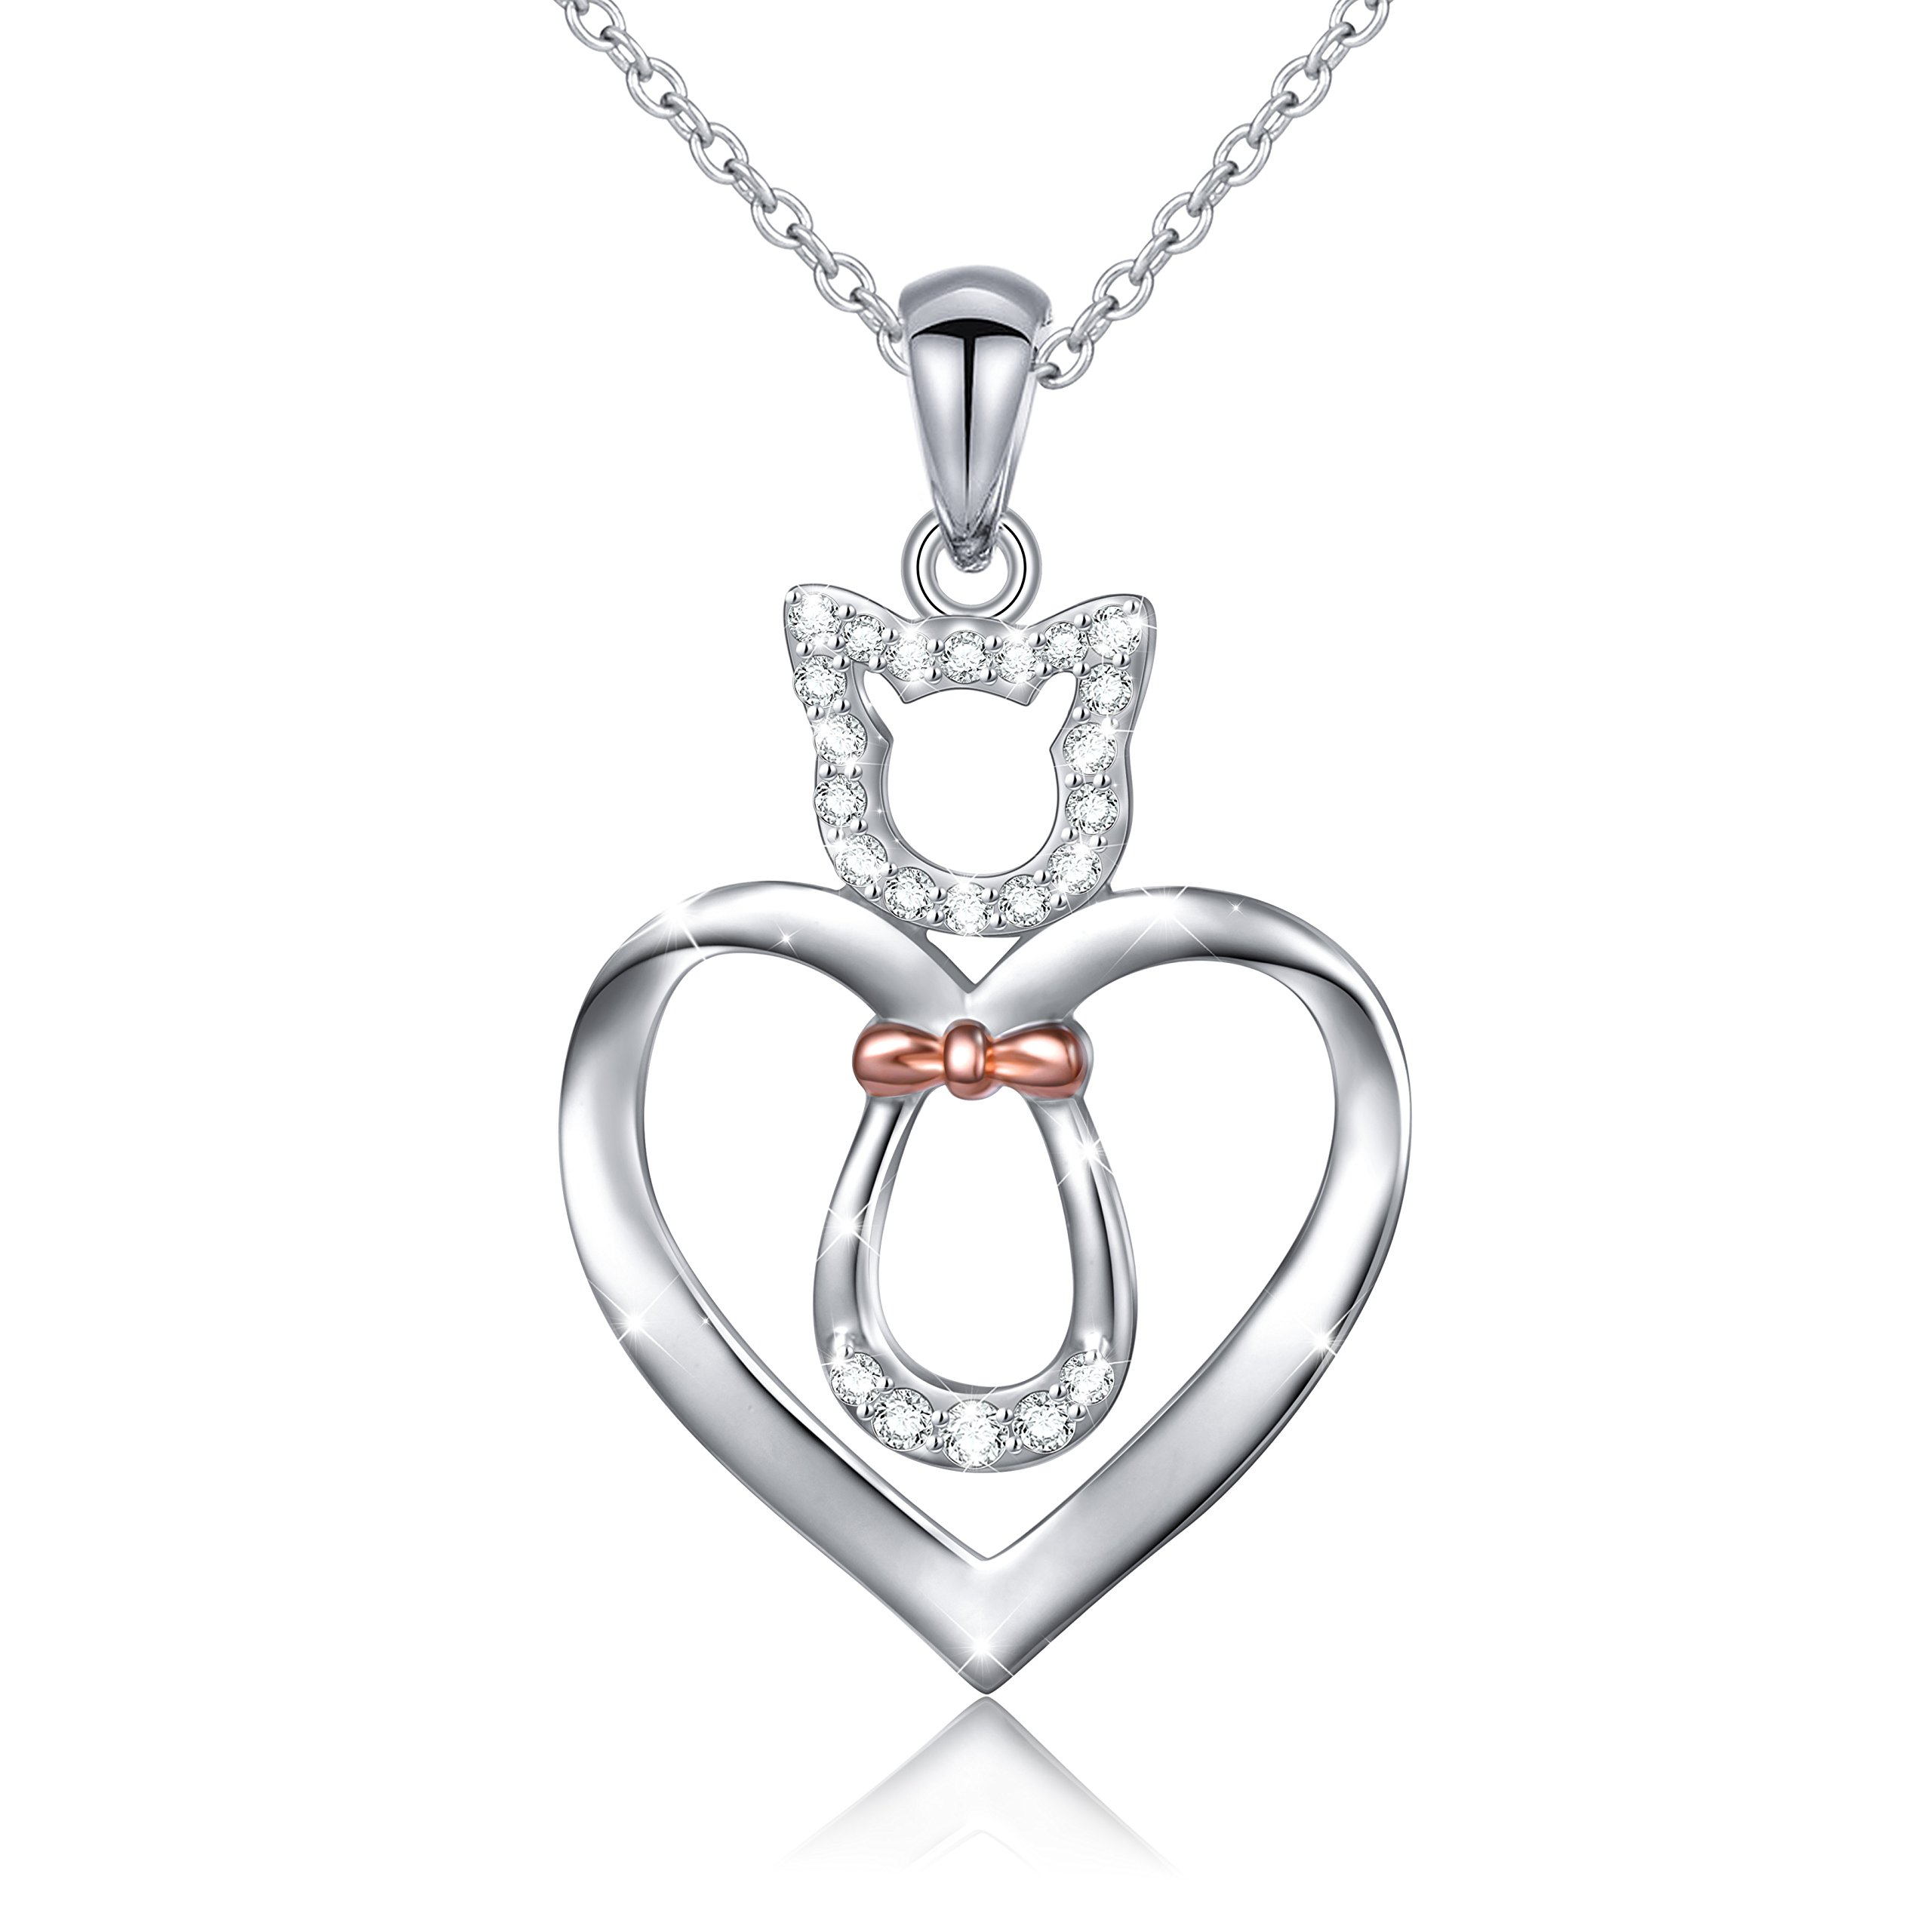 LINLIN FINE JEWELRY 925 Sterling Silver CZ Cute Cat/Puppy Dog Heart Pendant Necklace Gift for Women Girls,18'' (Cat)